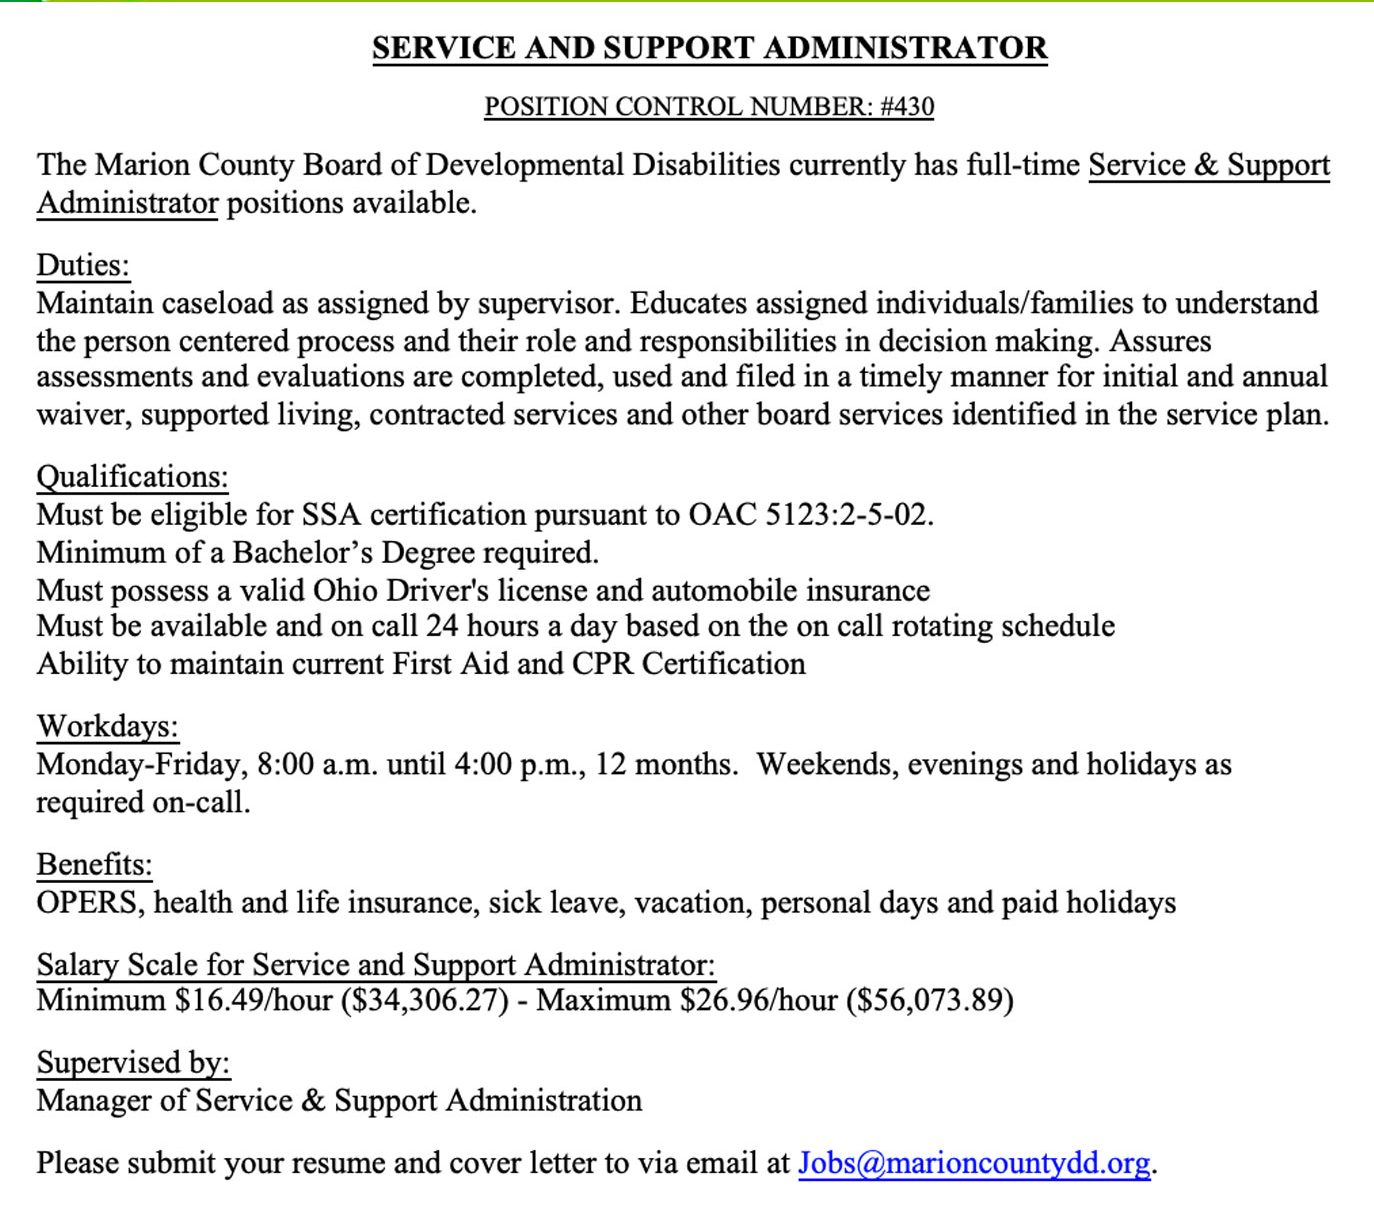 Service and Support Administrator Job Posting